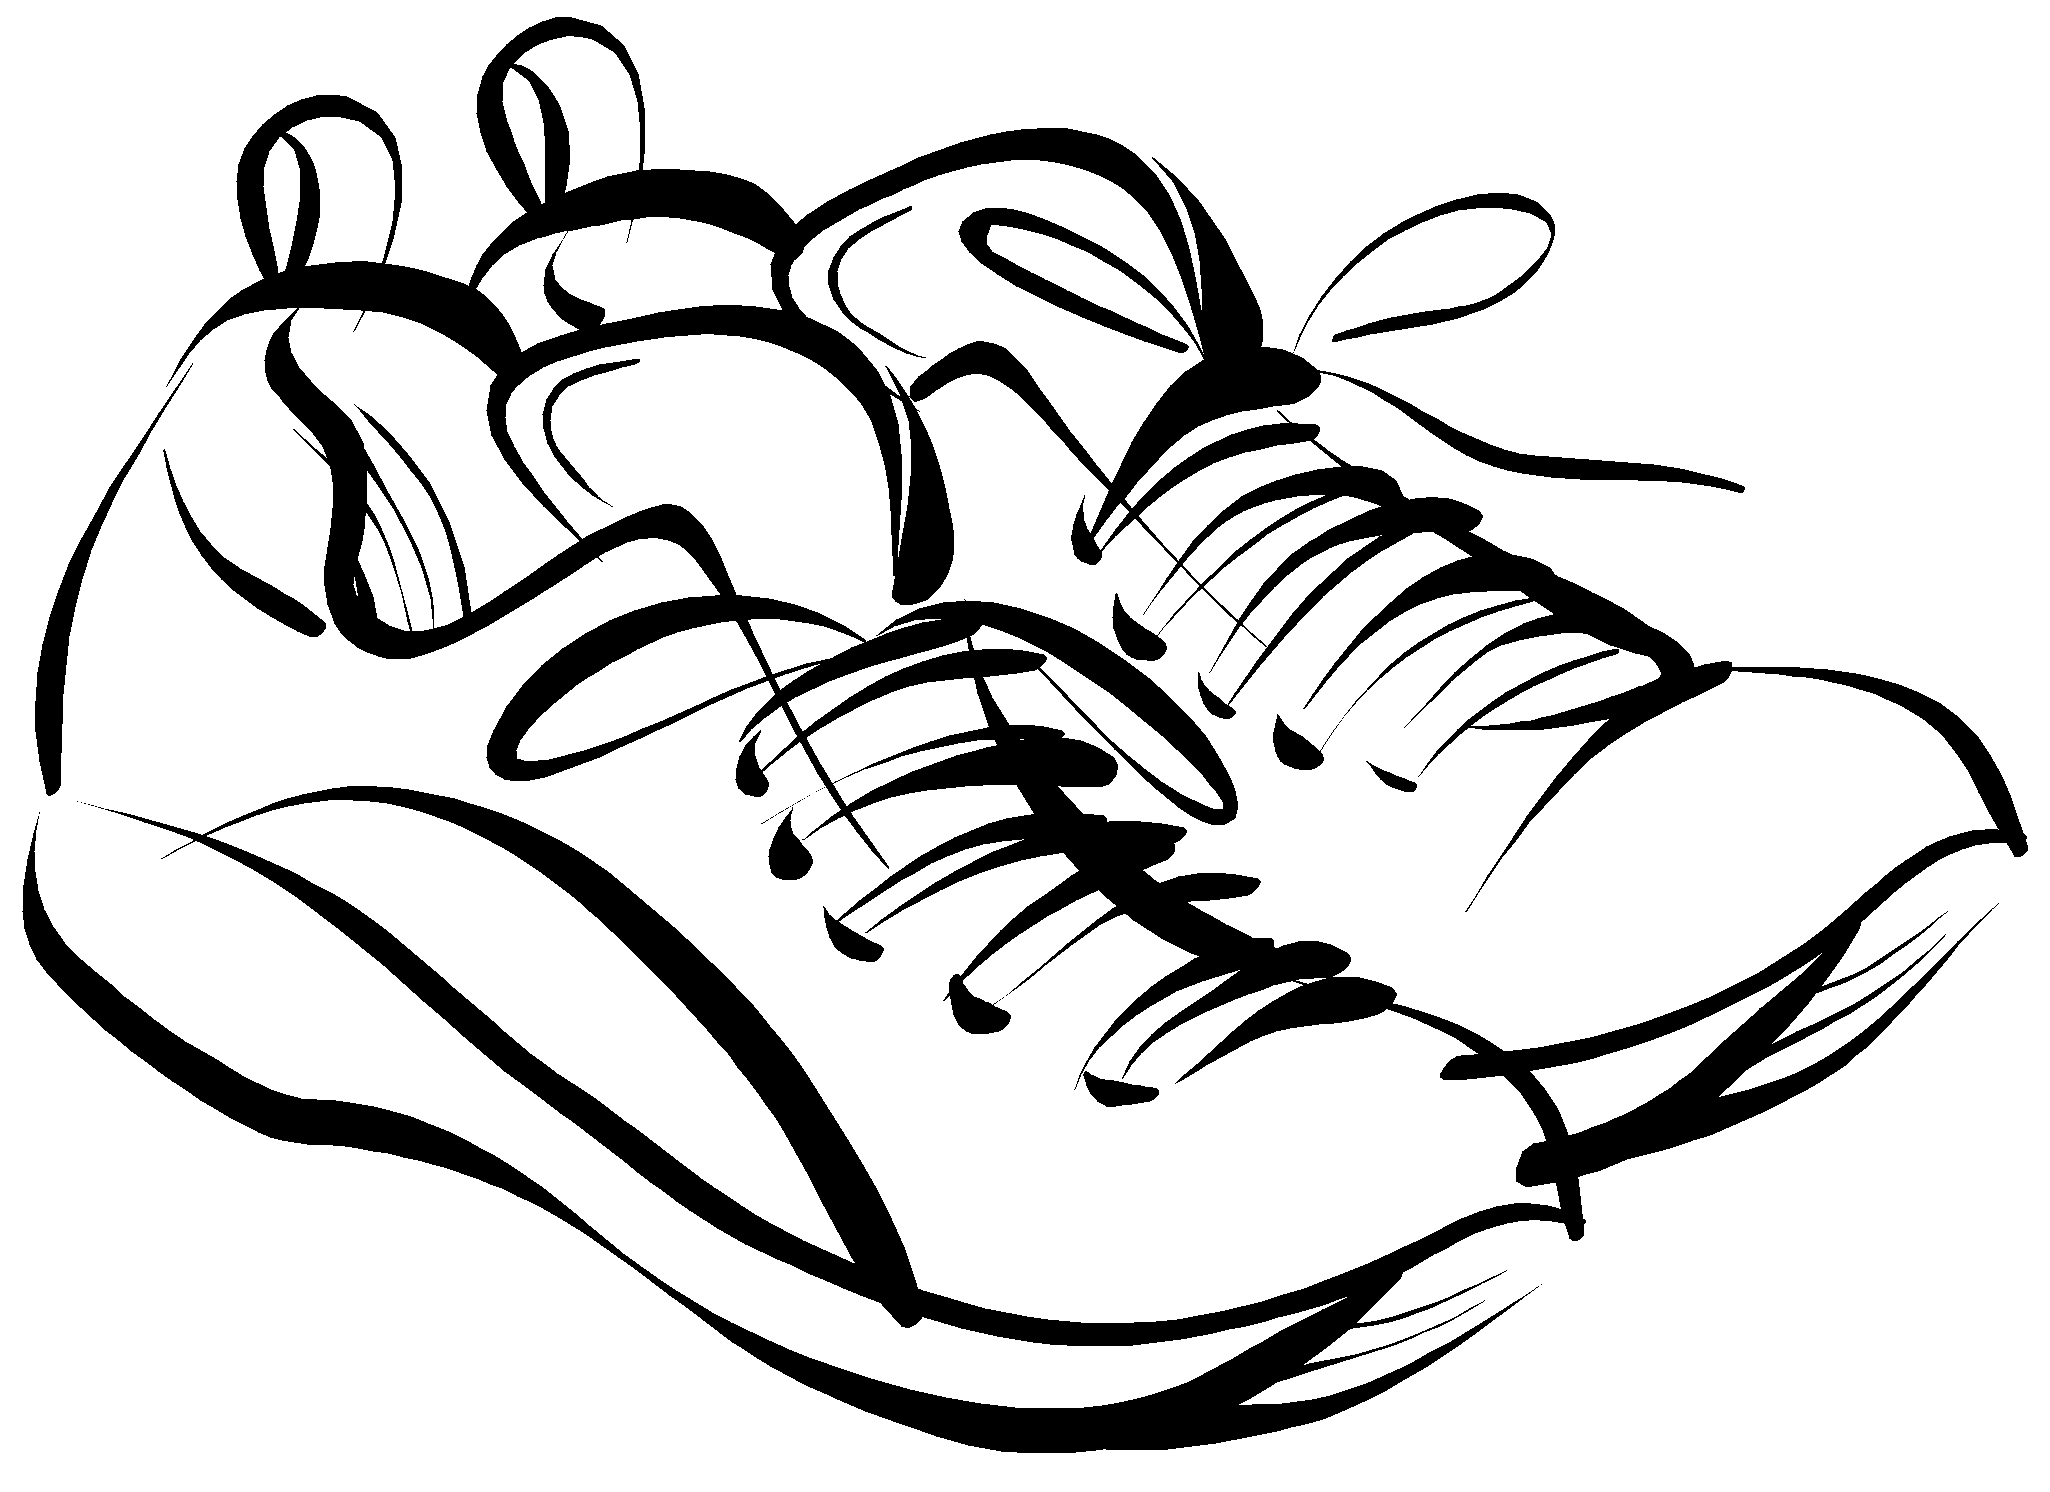 png library library Tennis shoes clipart black and white. Gym sport shoe free